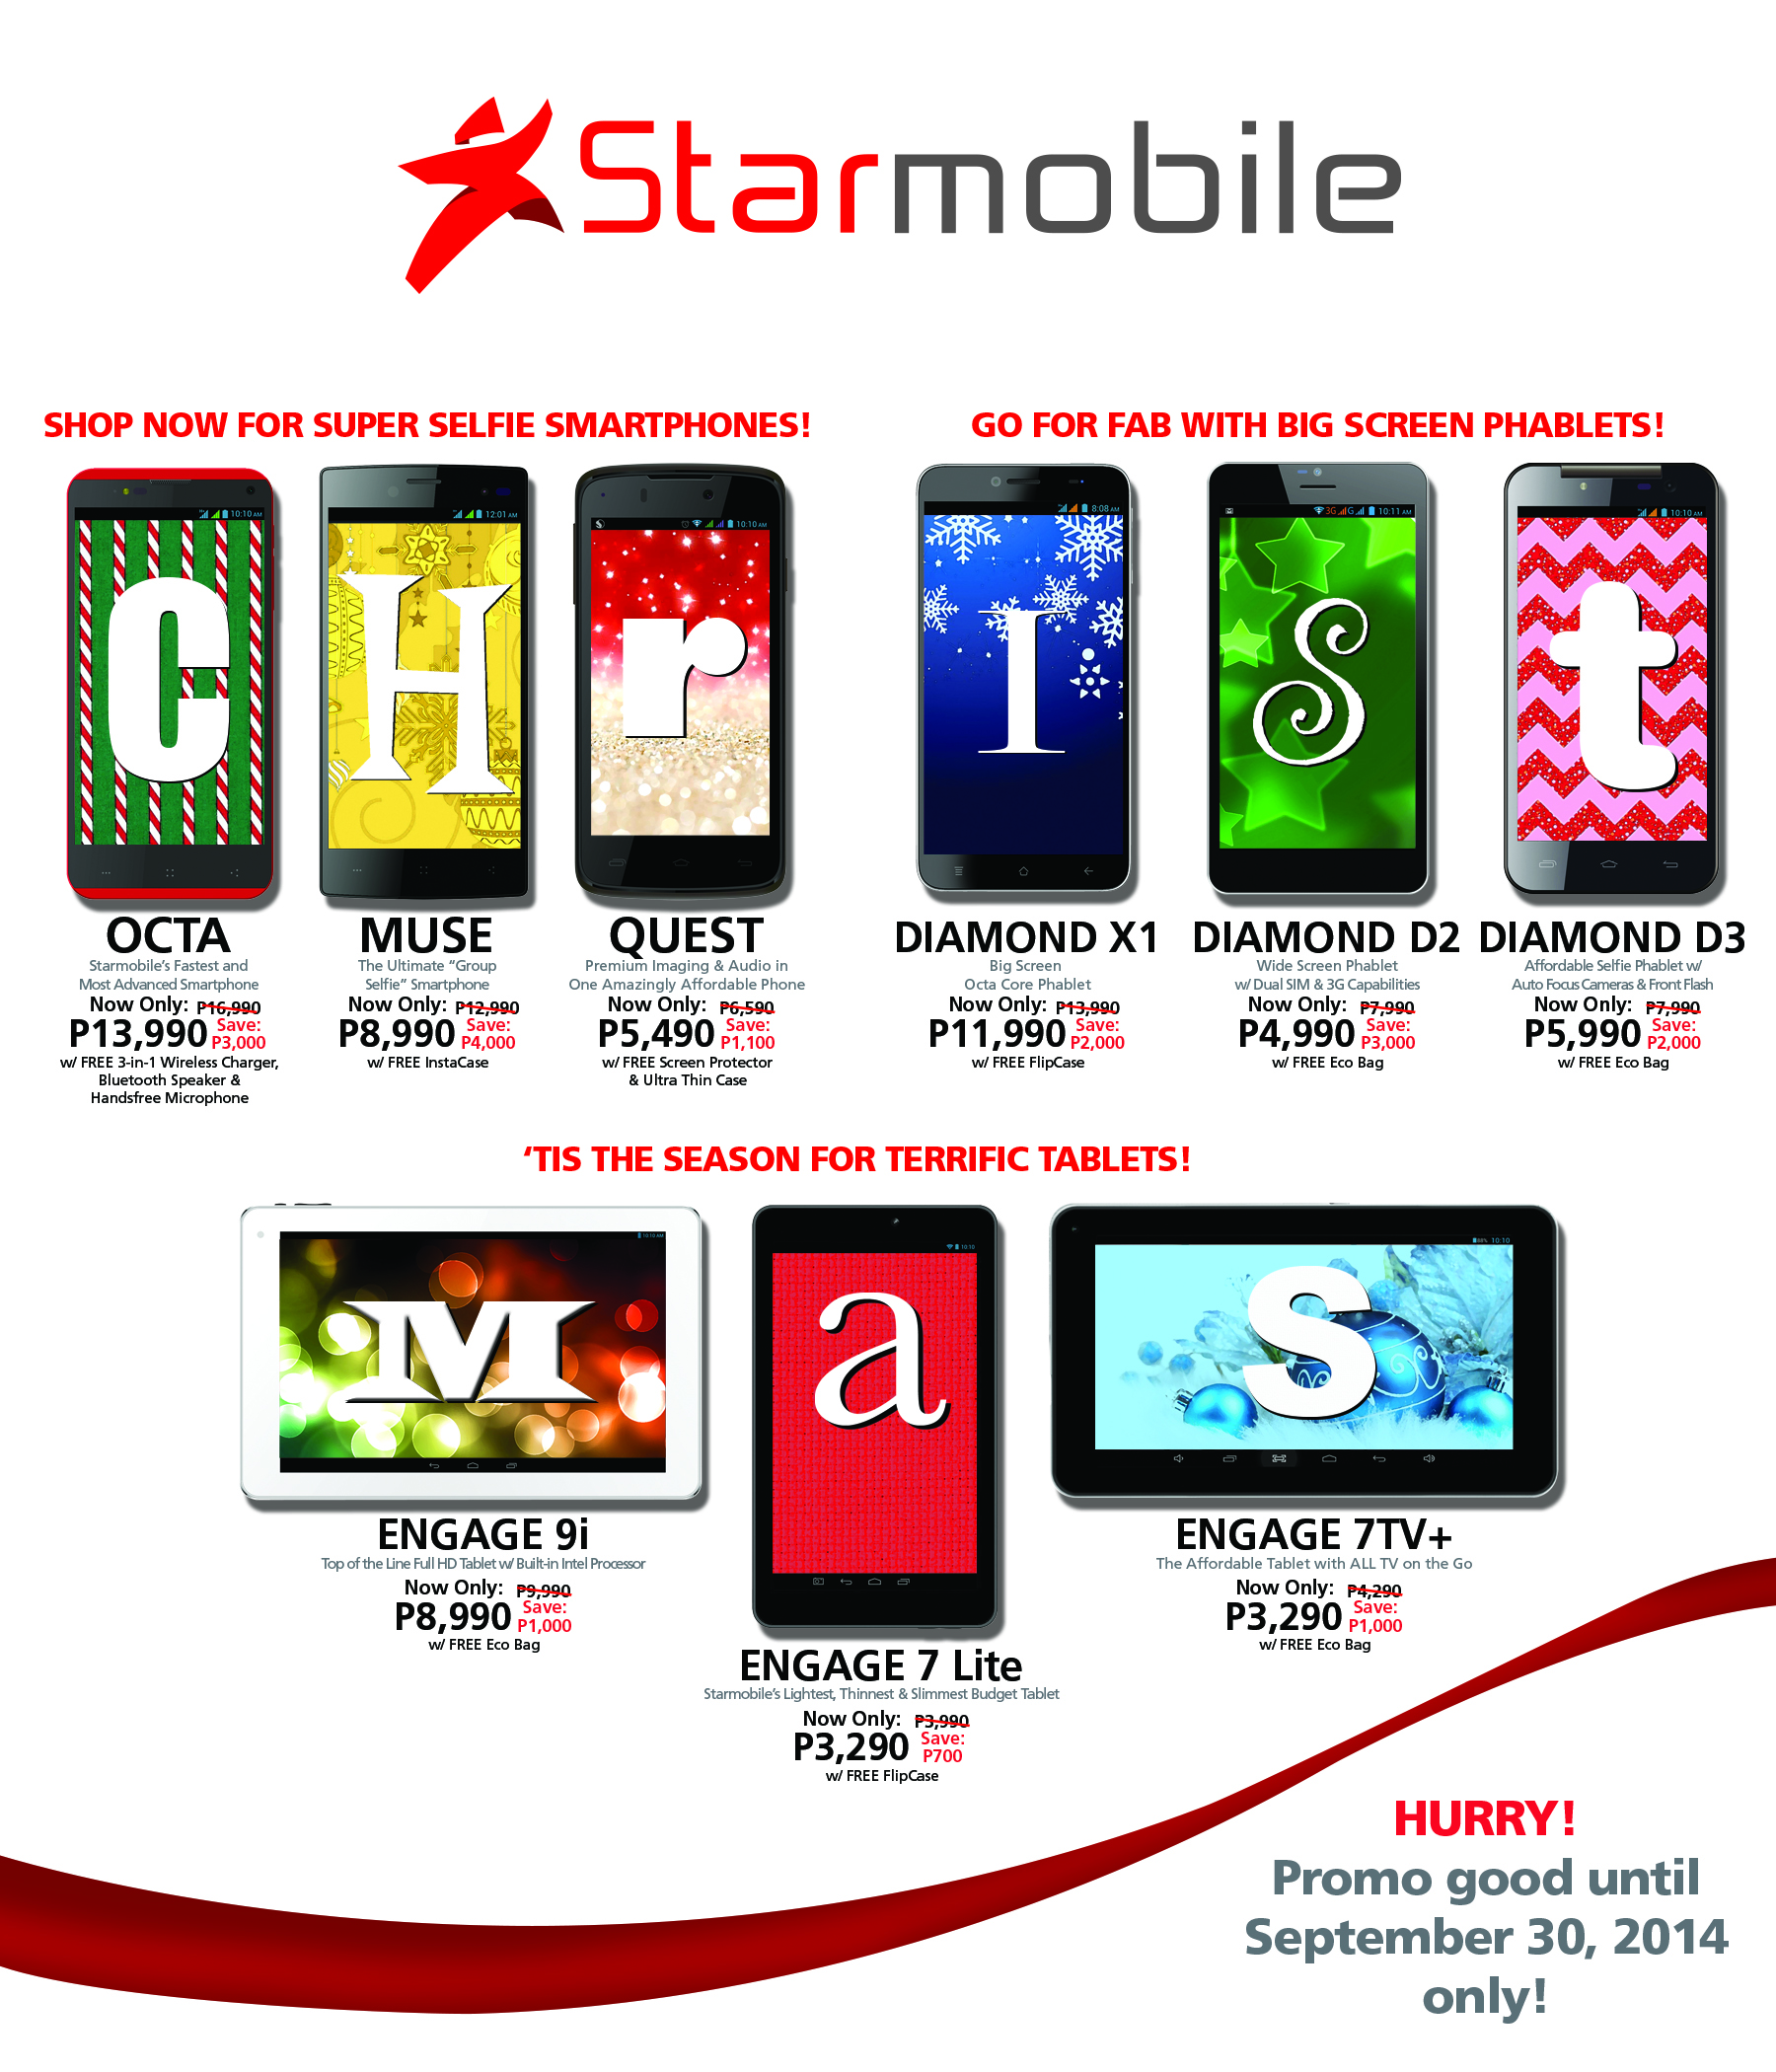 Starmobile drops prices for select smartphones and tablets as part ...